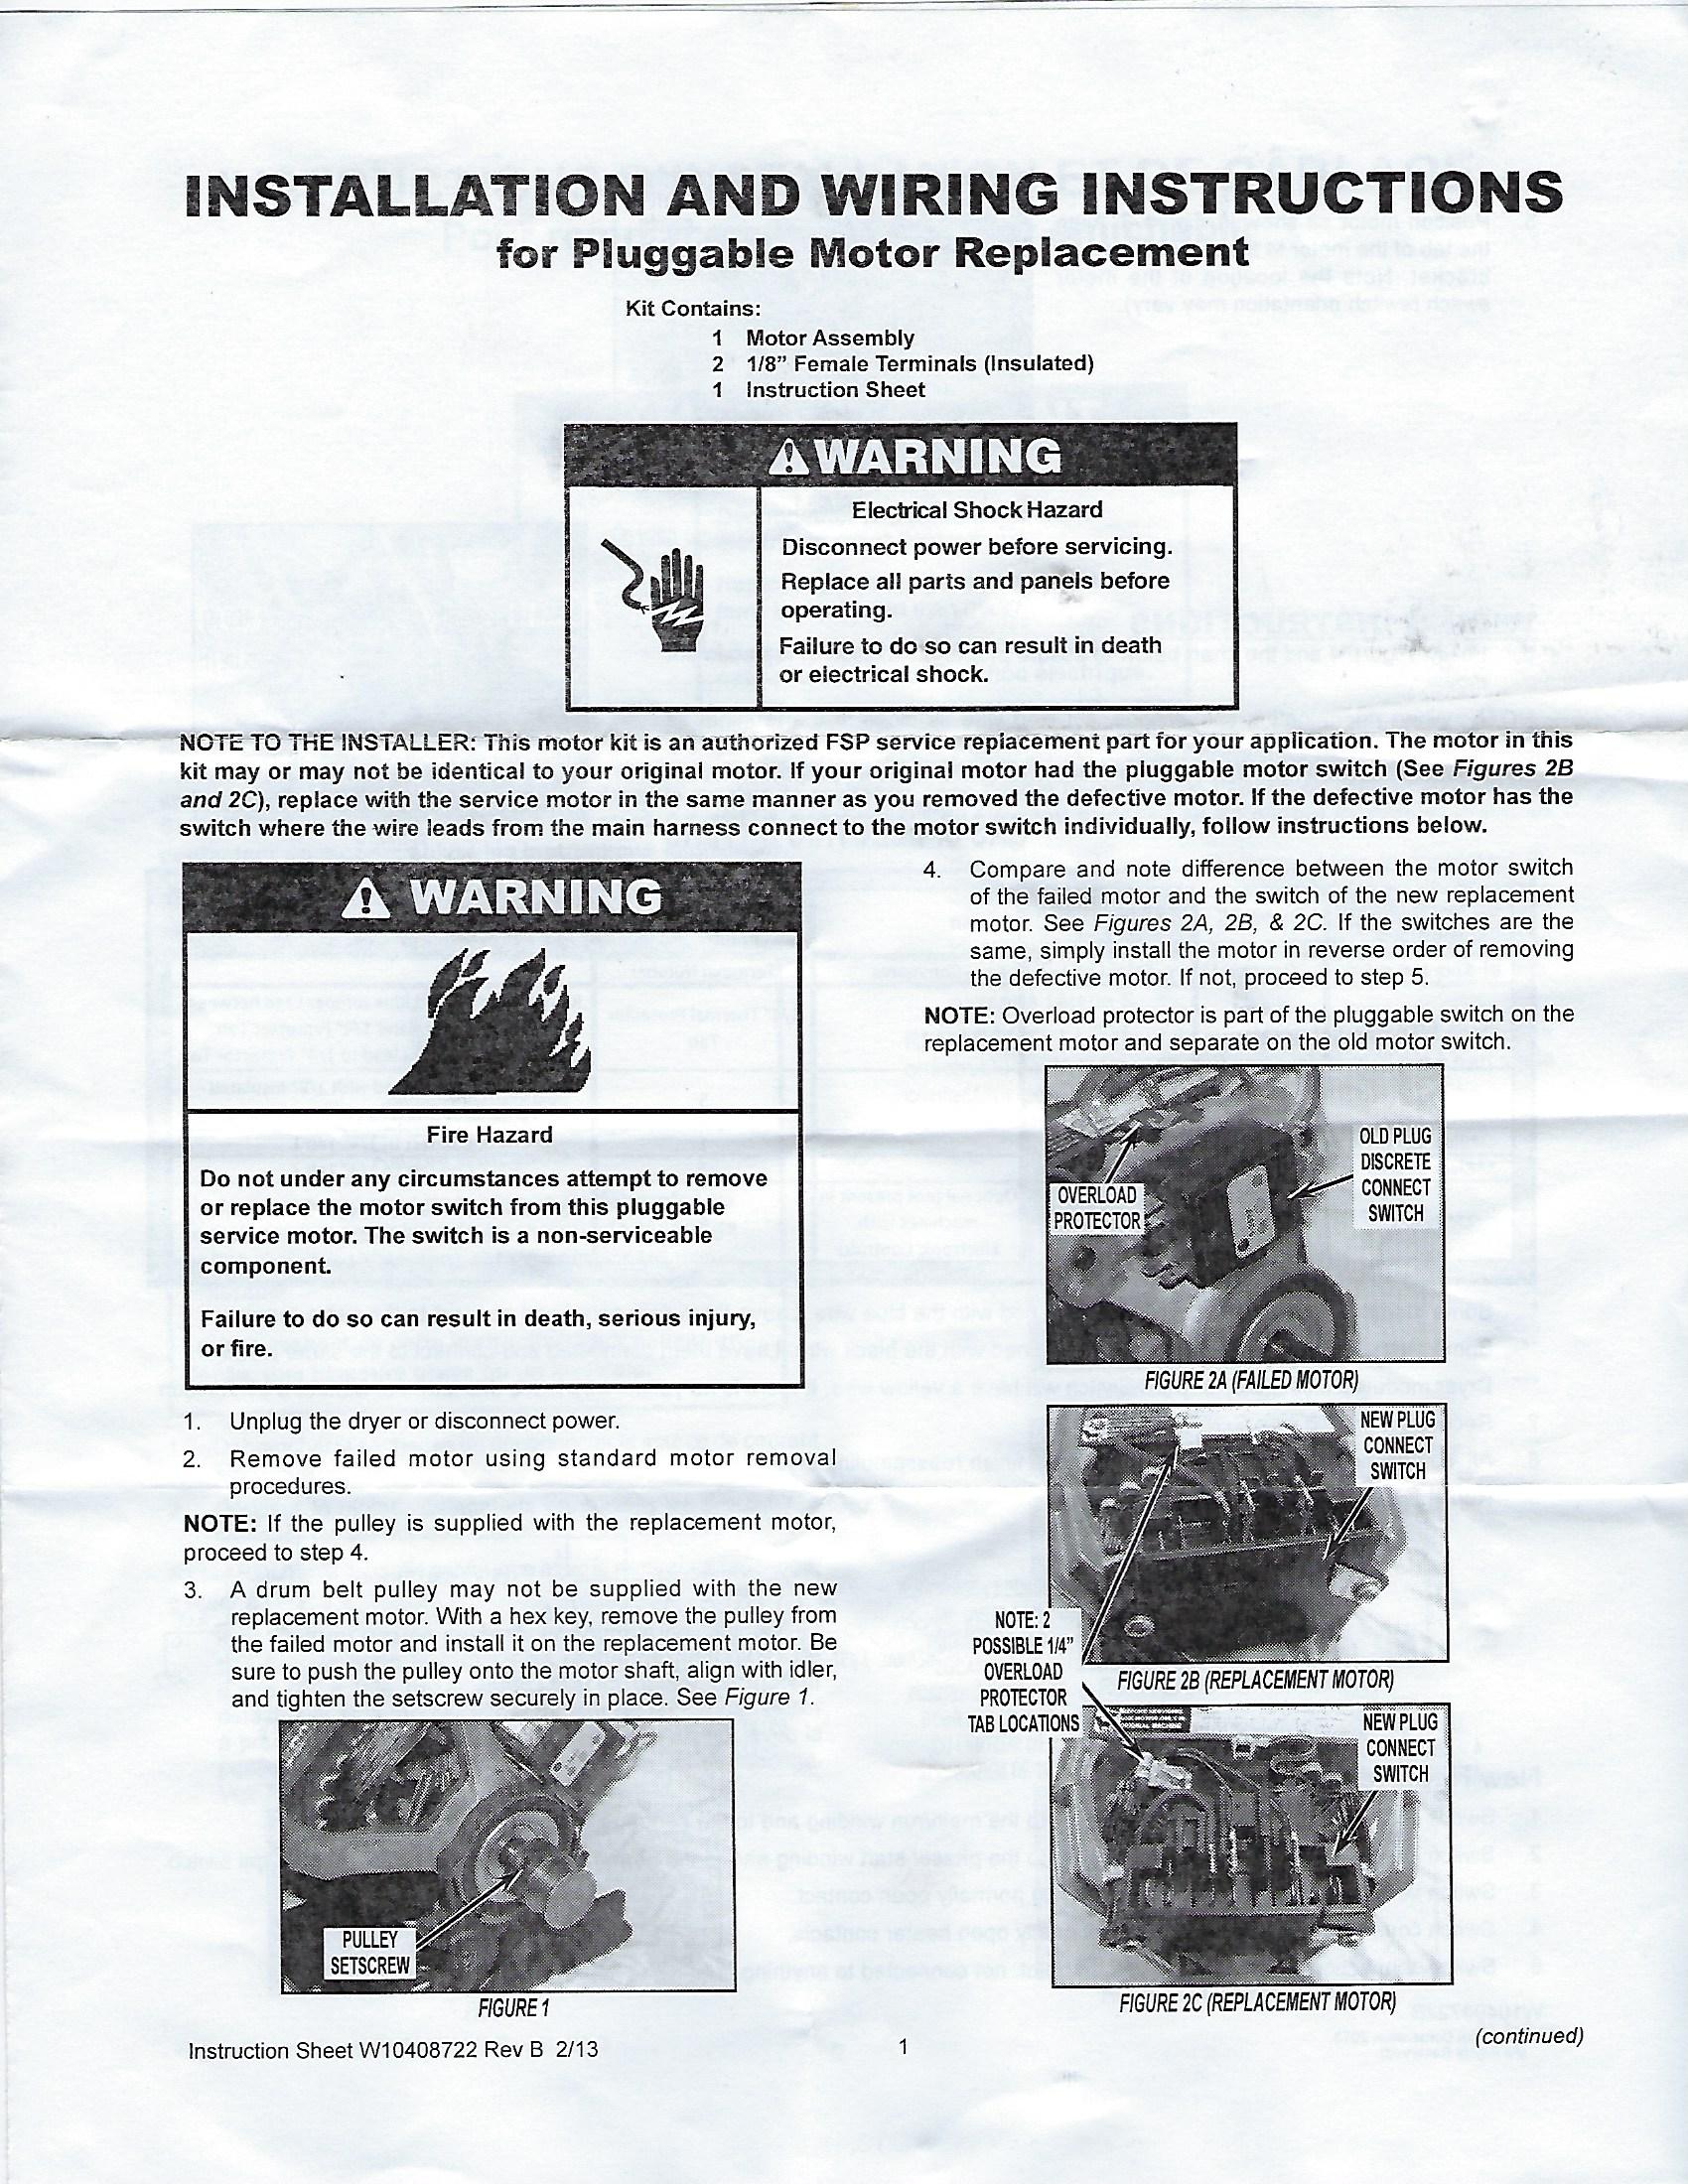 maytag dryer wiring diagram rj45 ethernet i purchased a replacement motor w10410999 for my